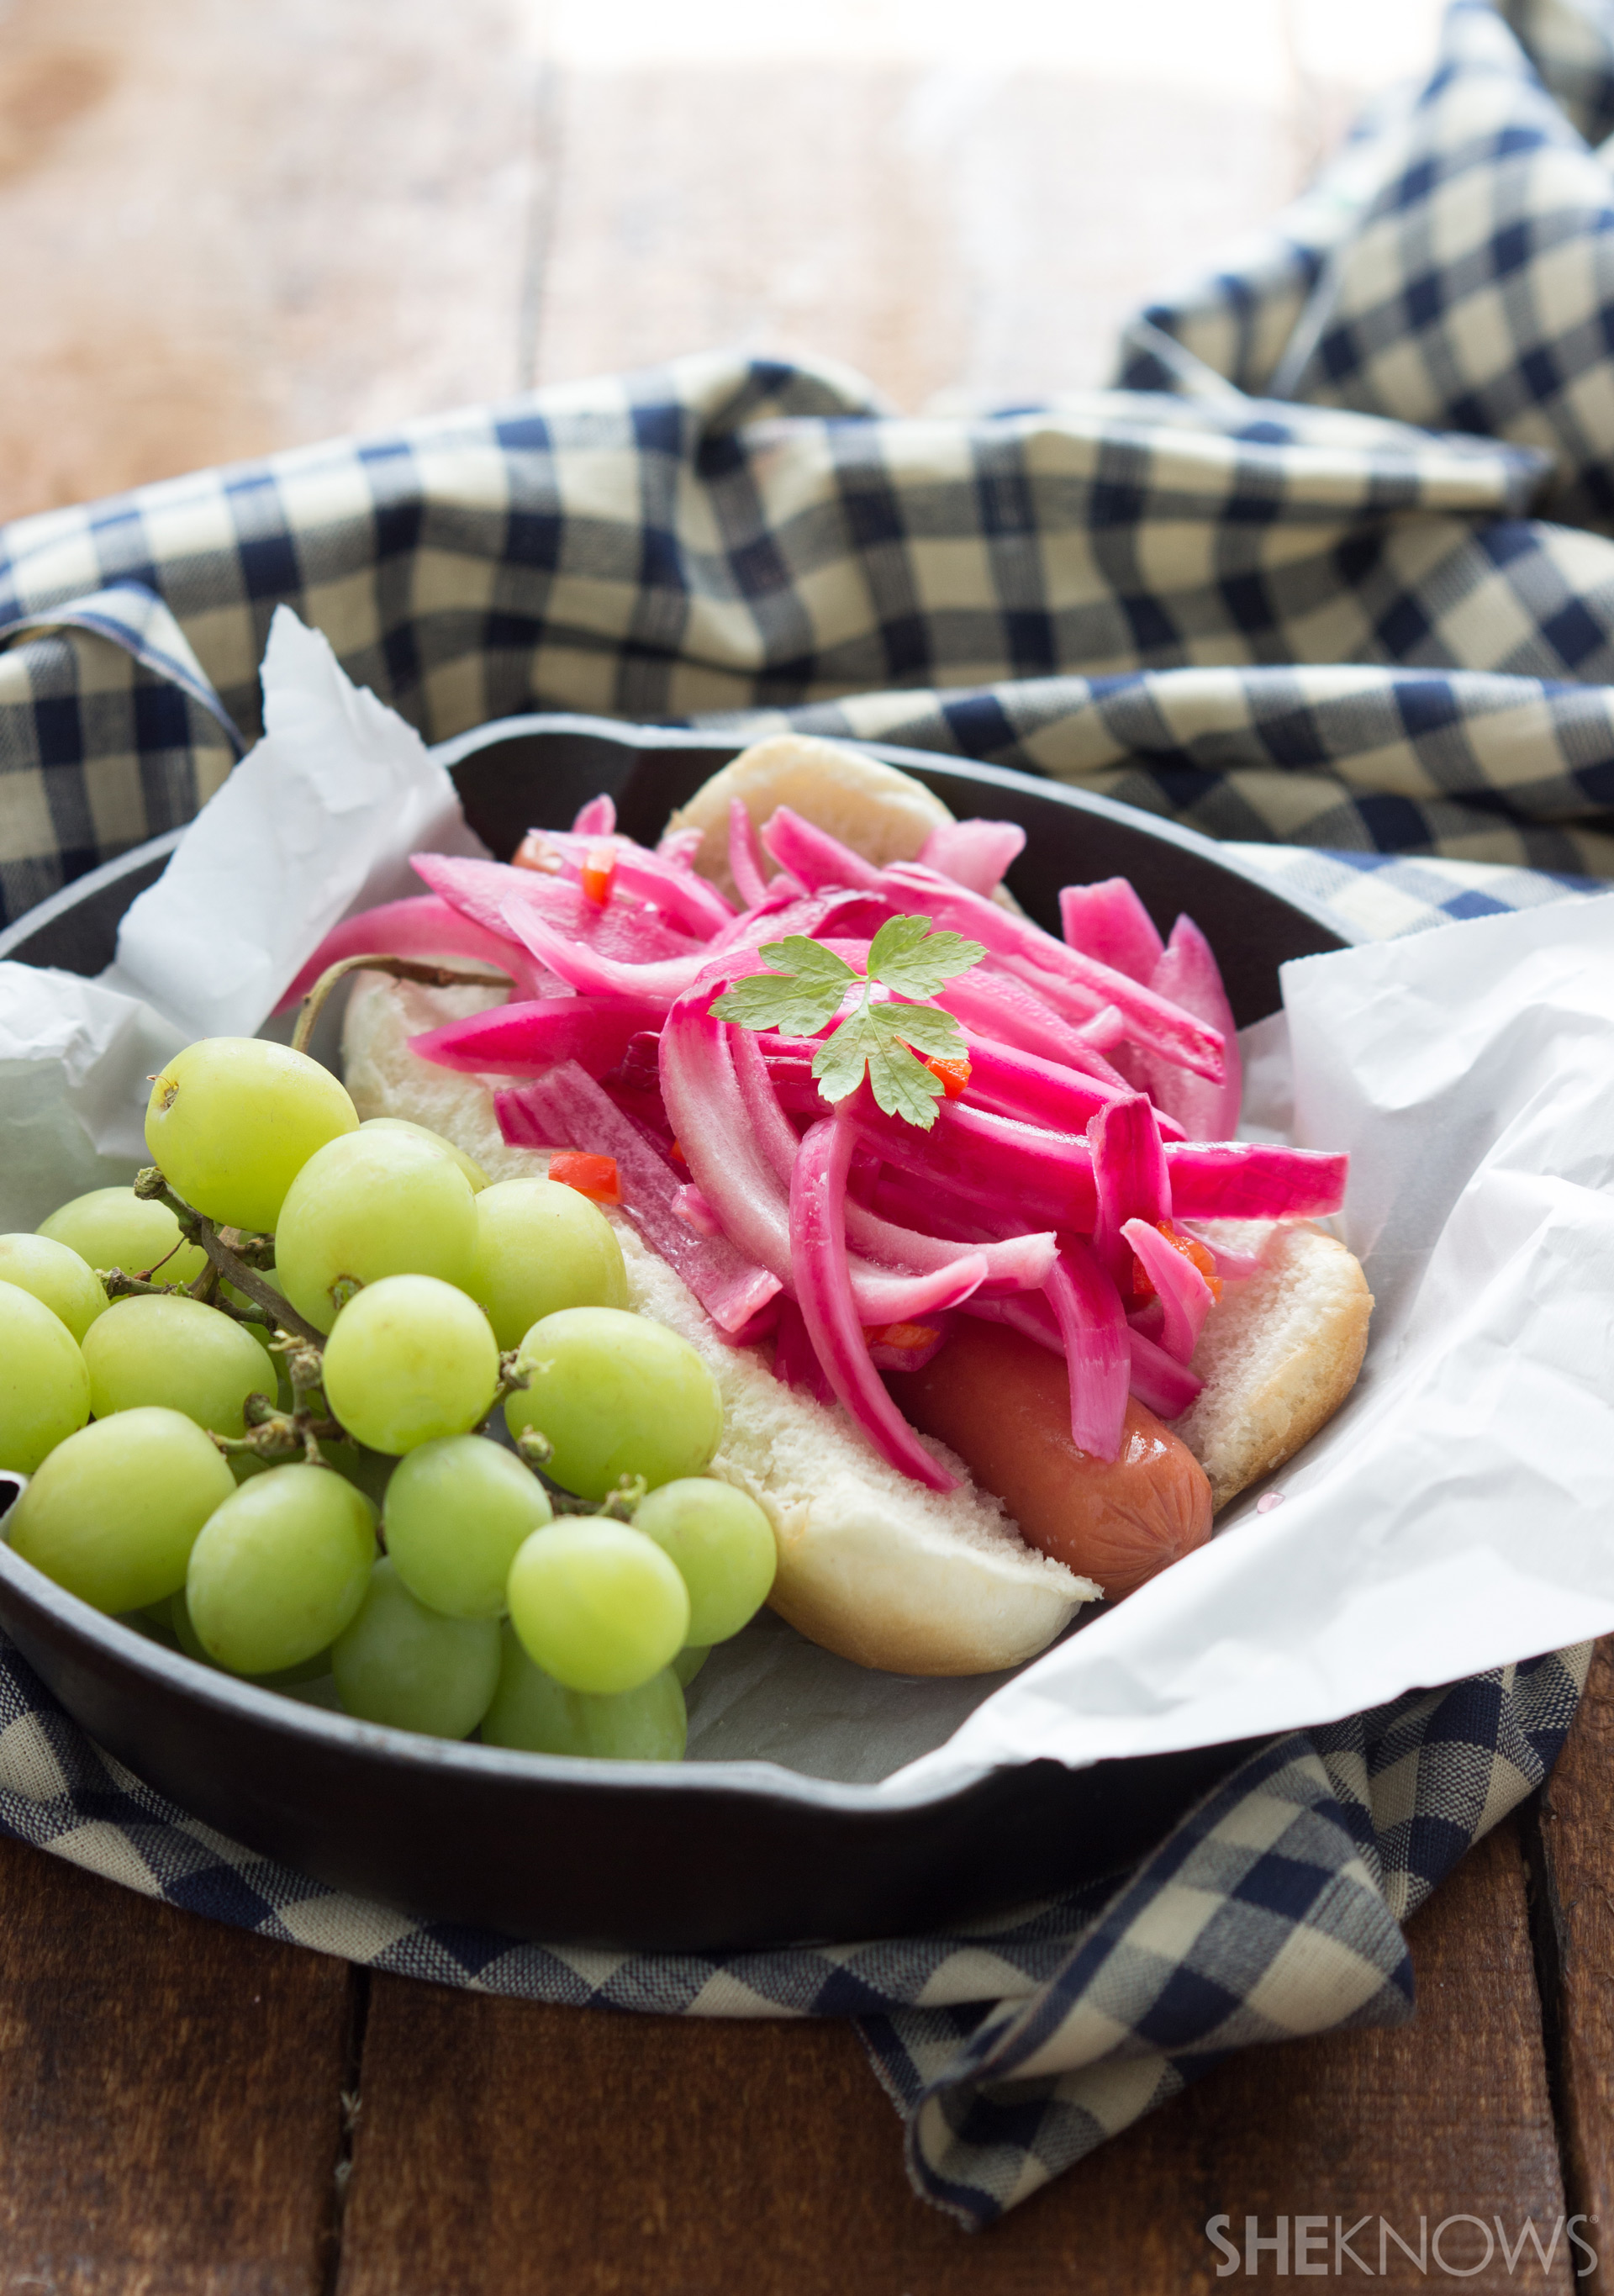 Pickled habanero onion topped hot dog | Sheknows.com